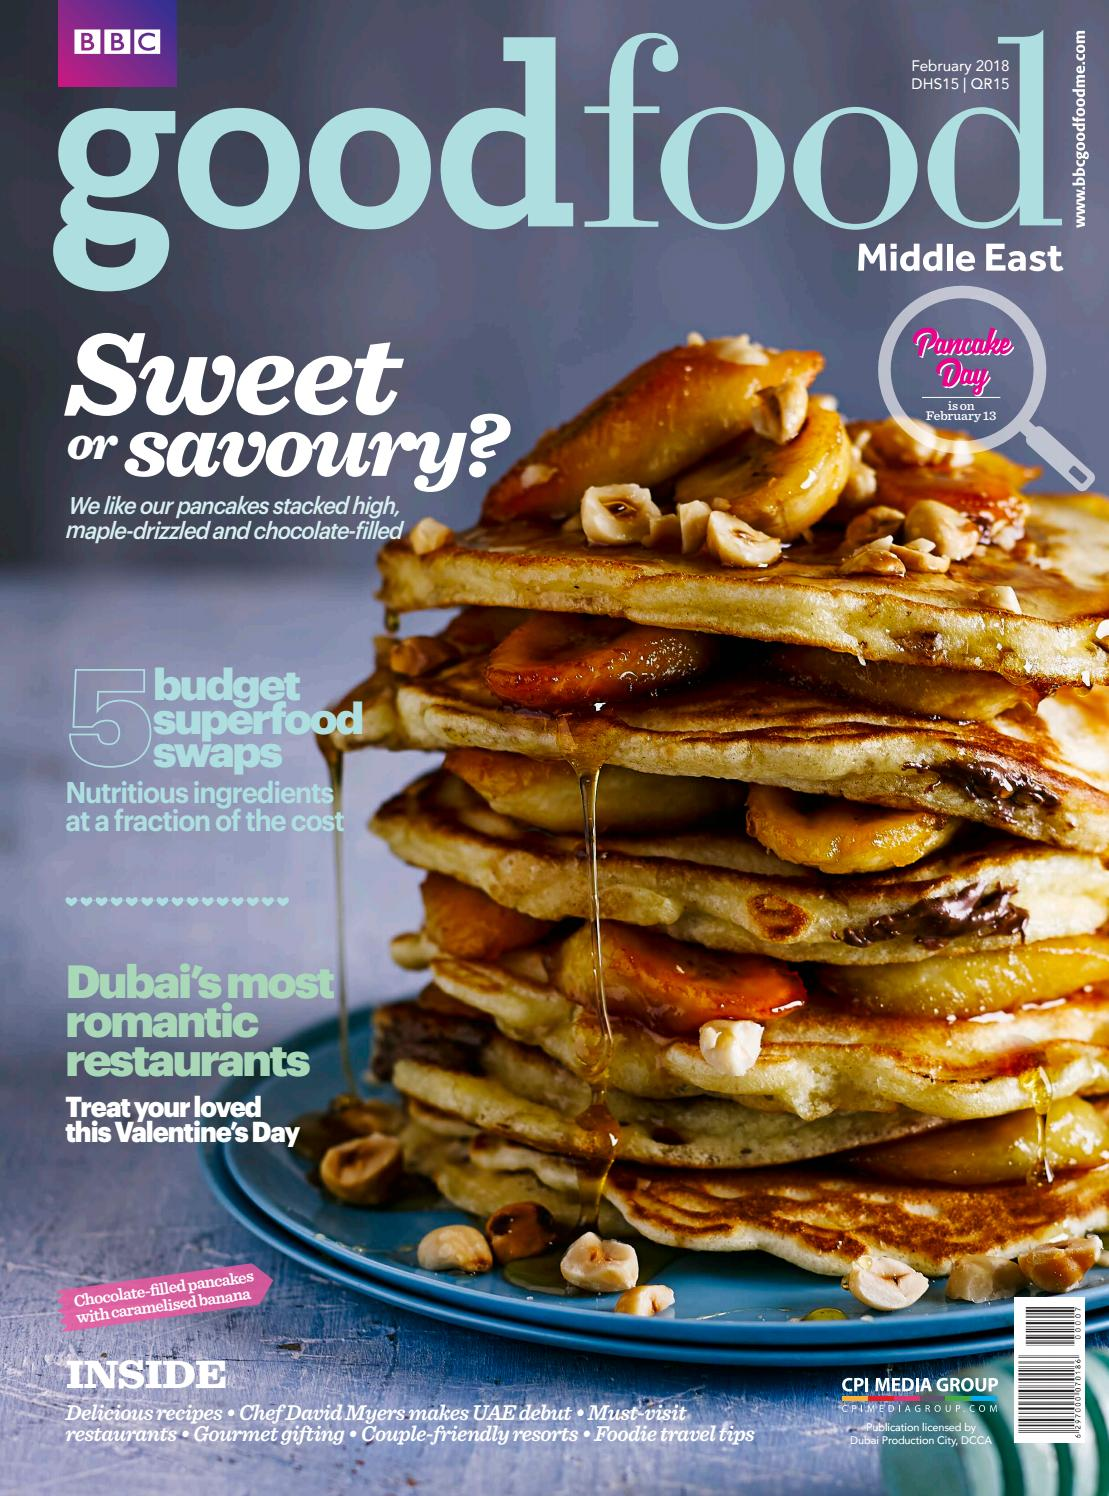 f67ed913024d8 BBC Good Food ME - 2018 February by BBC Good Food Middle East - issuu